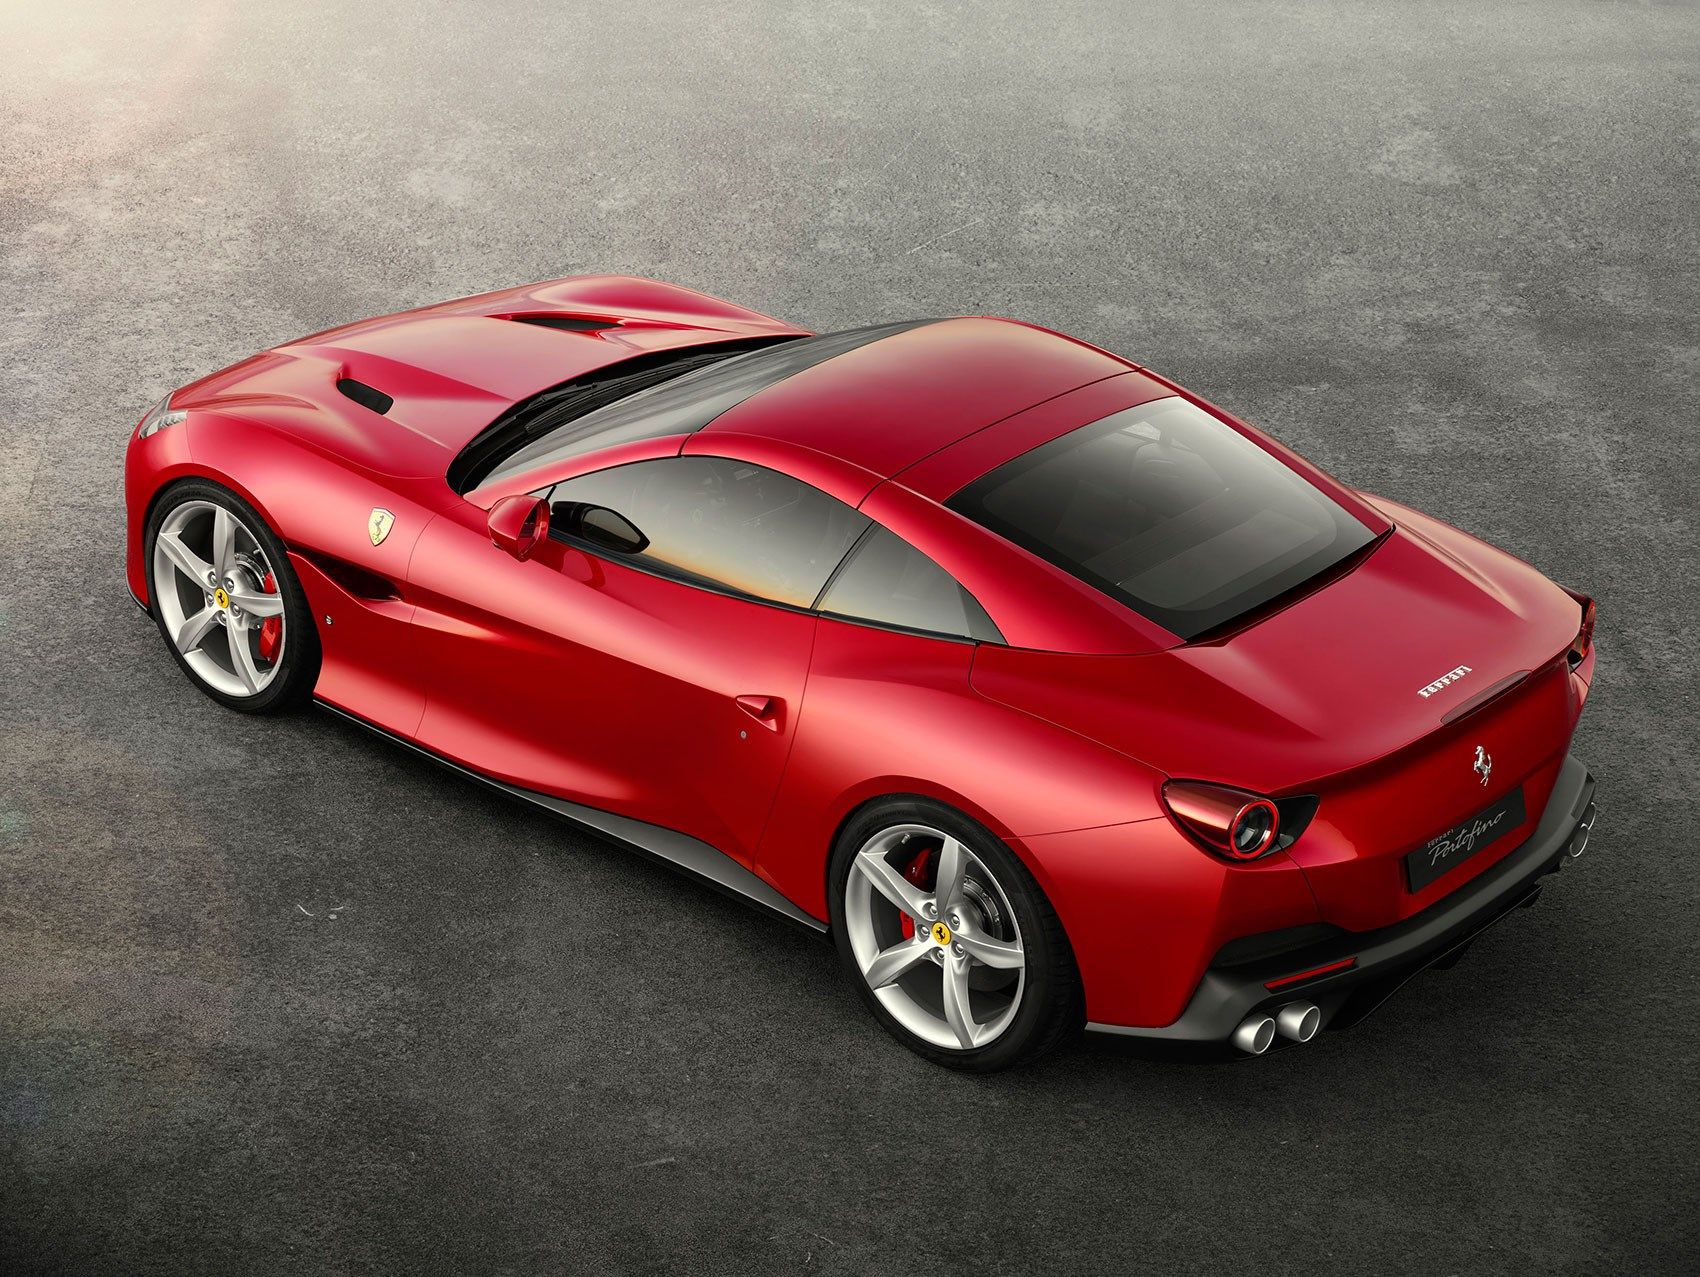 Feast Your Eyes On The Stunning New Ferrari Portofino